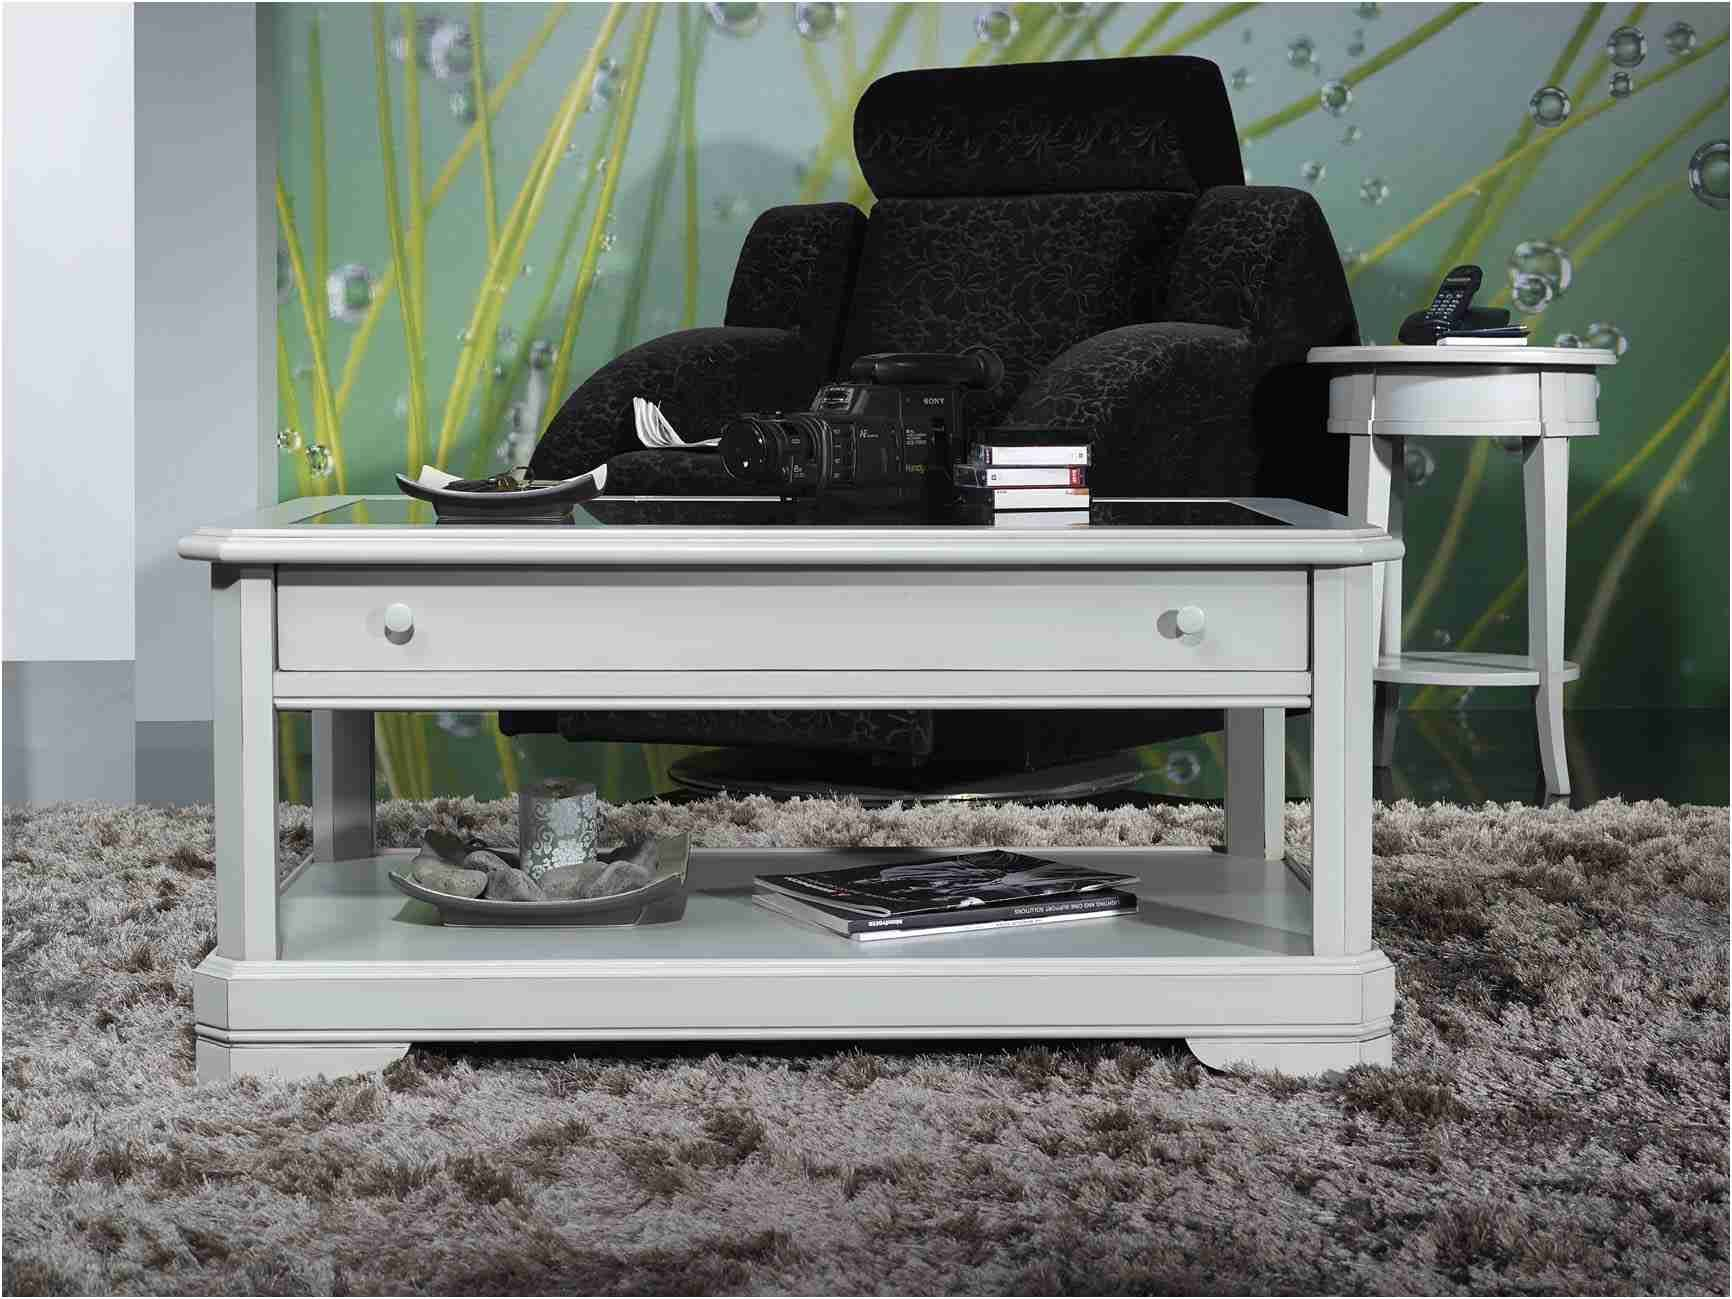 76 Exclusif Table Basse Vitrine